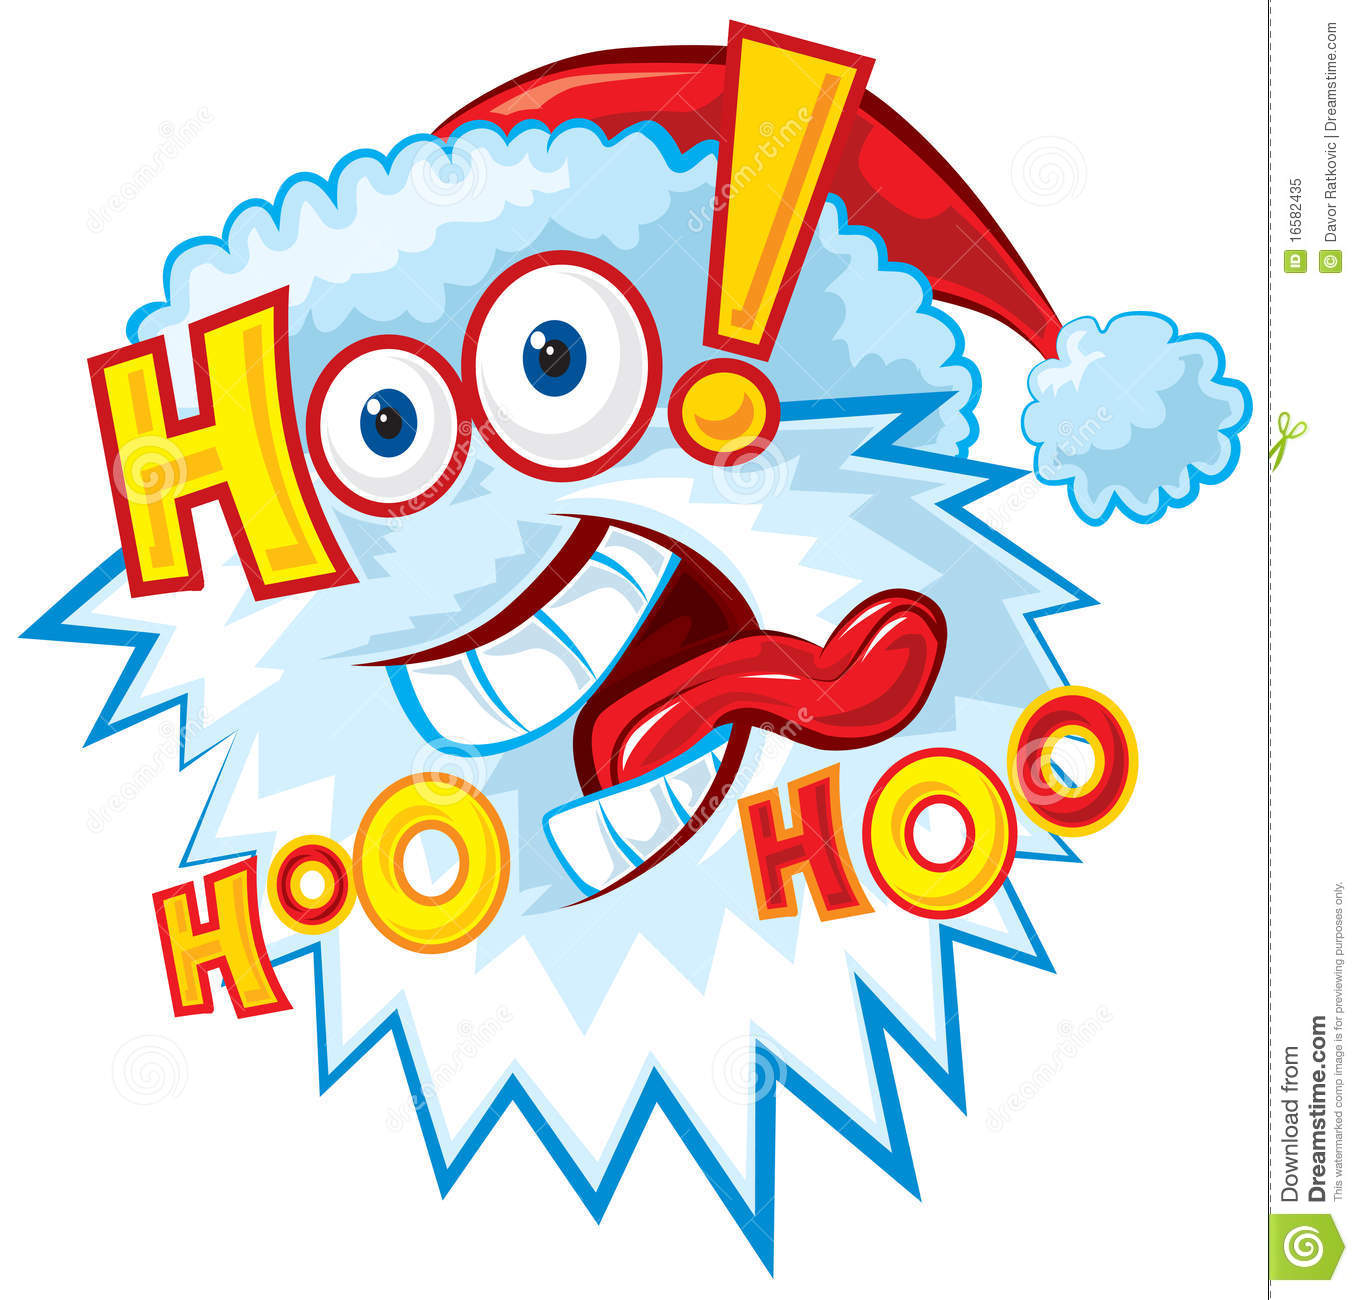 Crazy Santa   Hoo Hoo Hoo Royalty Free Stock Photo   Image  16582435